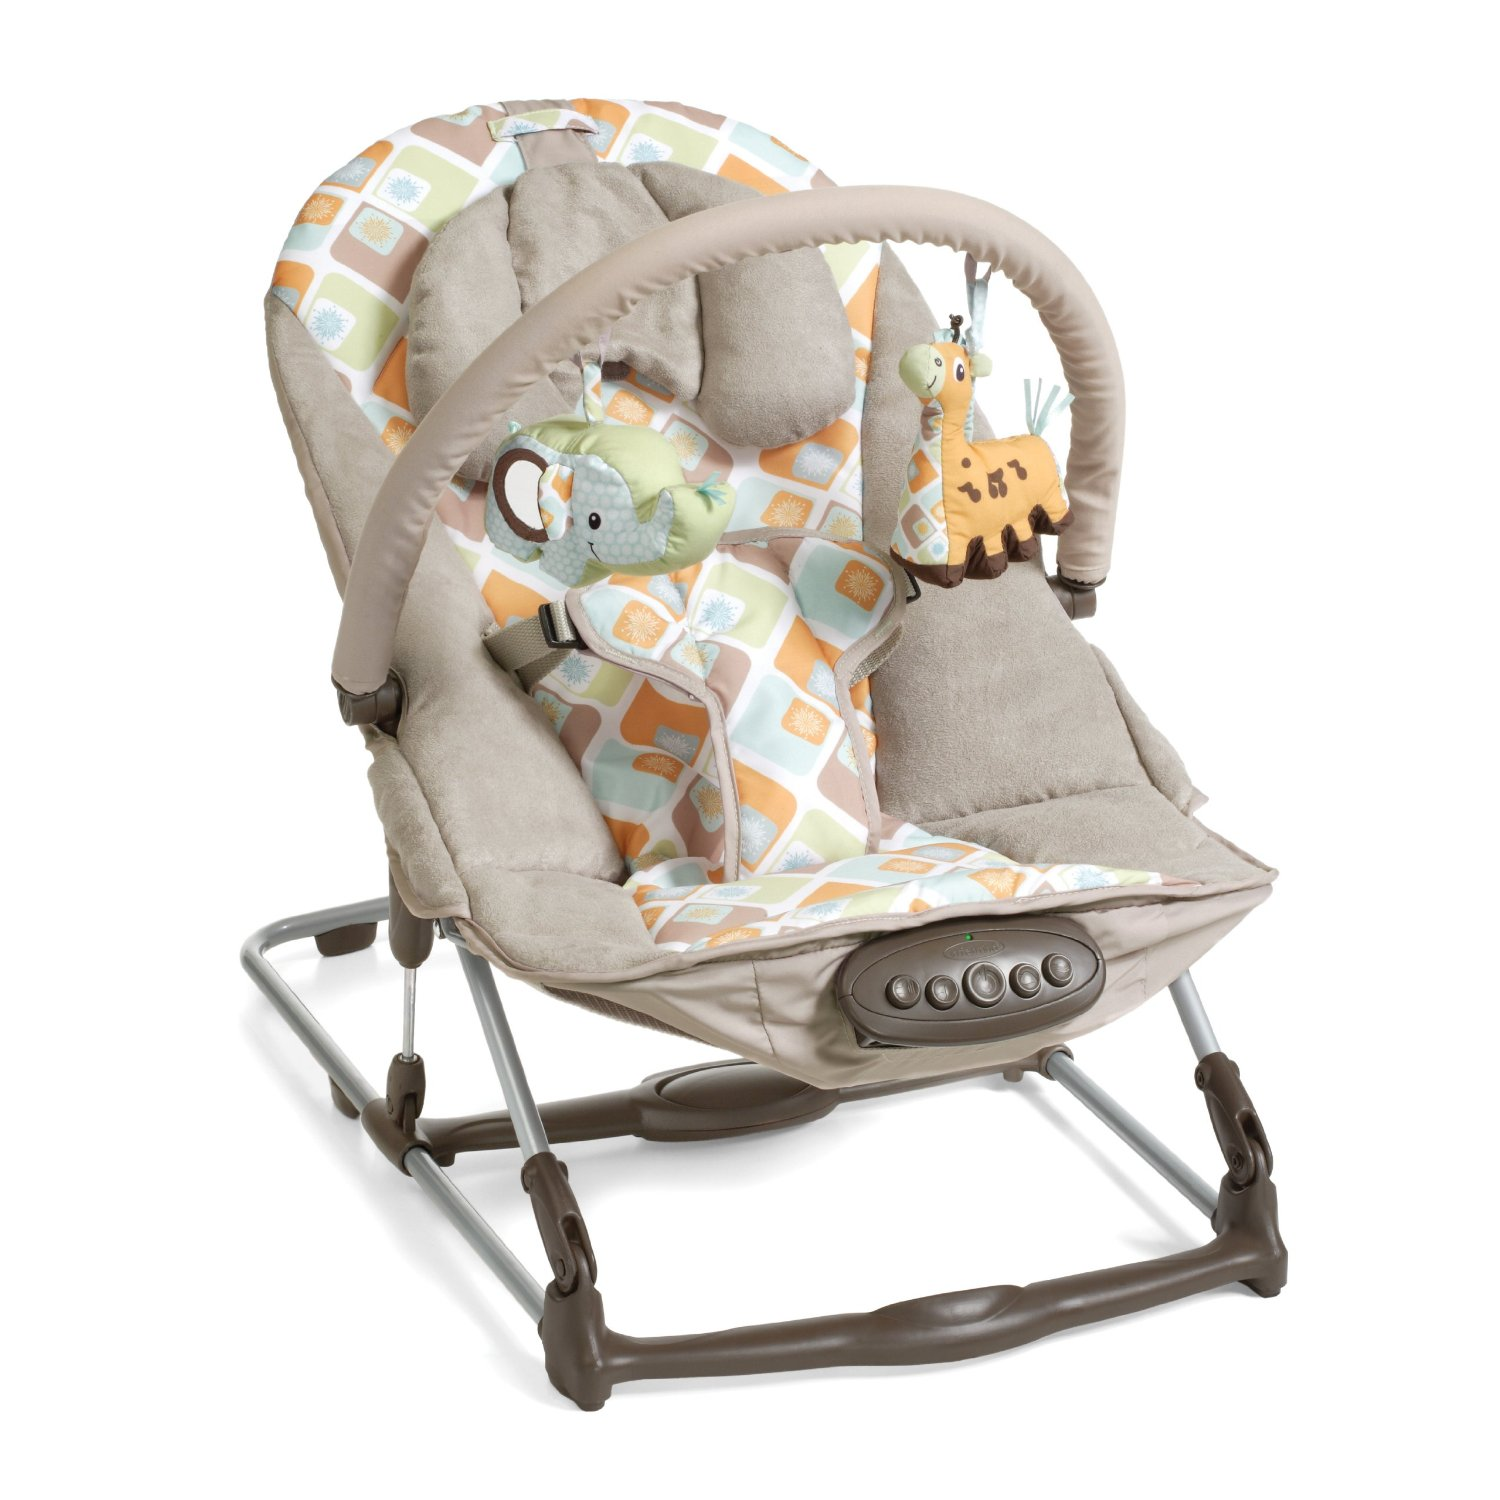 Next Stop  Another Baby Top 10 List  Baby ChairSwing